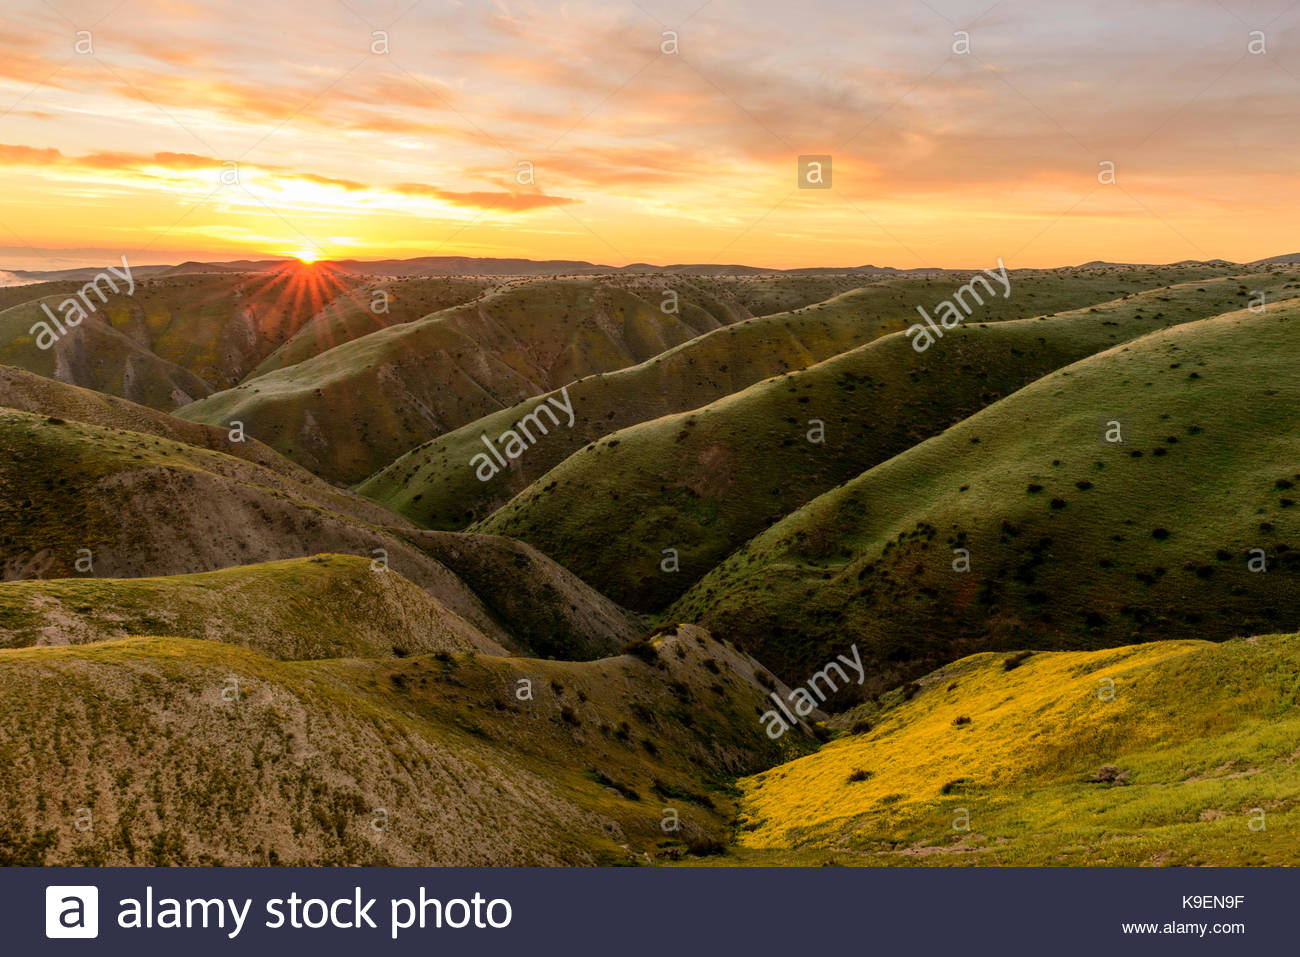 Colline Panoche Wilderness Area studio all'alba, Fresno County, California Immagini Stock